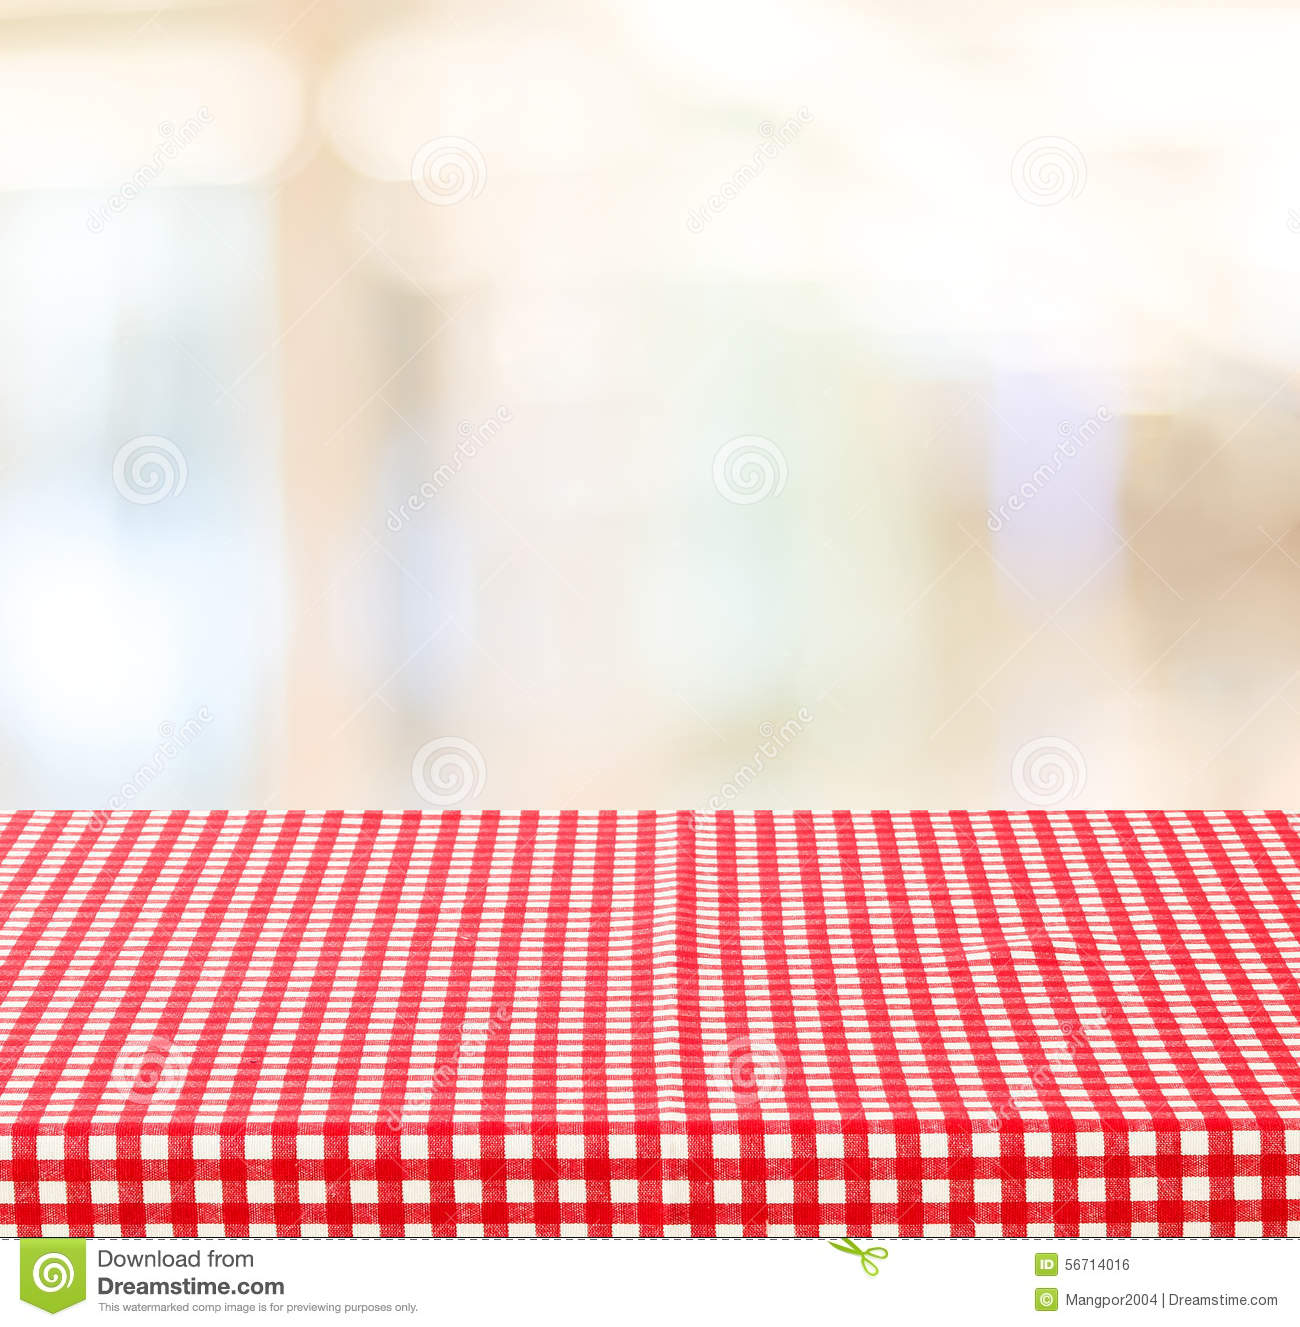 Check Out The Lights Over The: Empty Table With Red Check Tablecloth Over Blur Festive